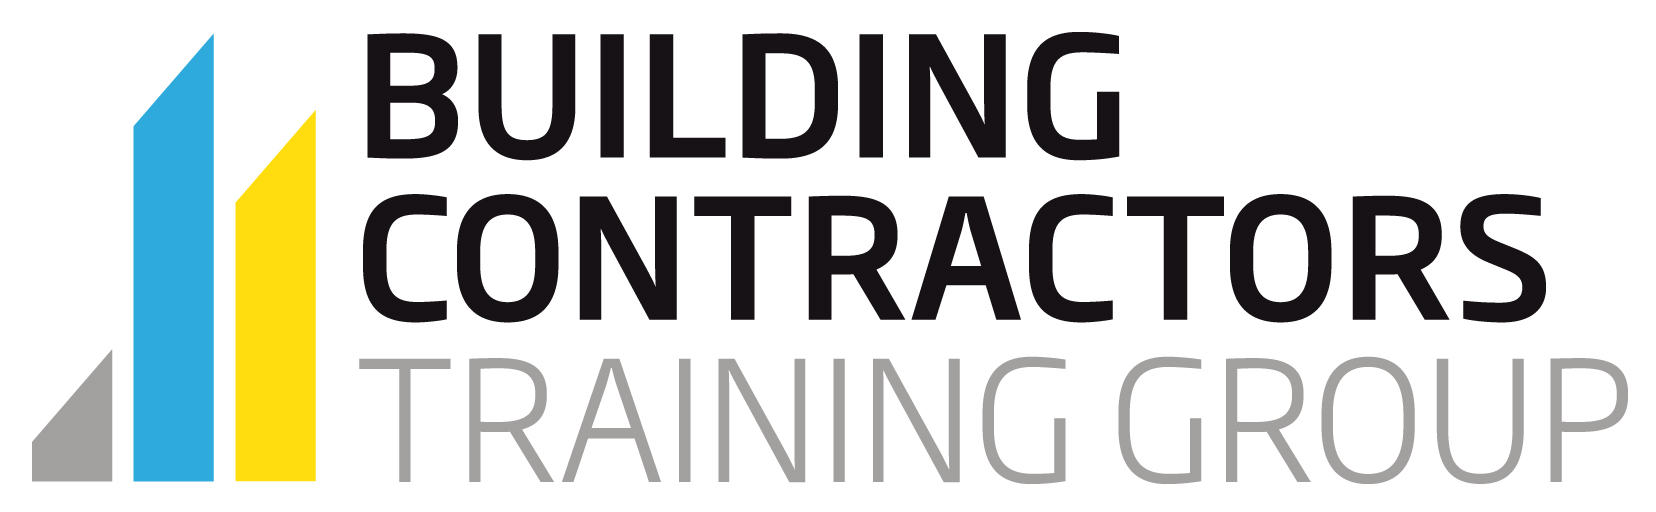 Building Contractors Training Group